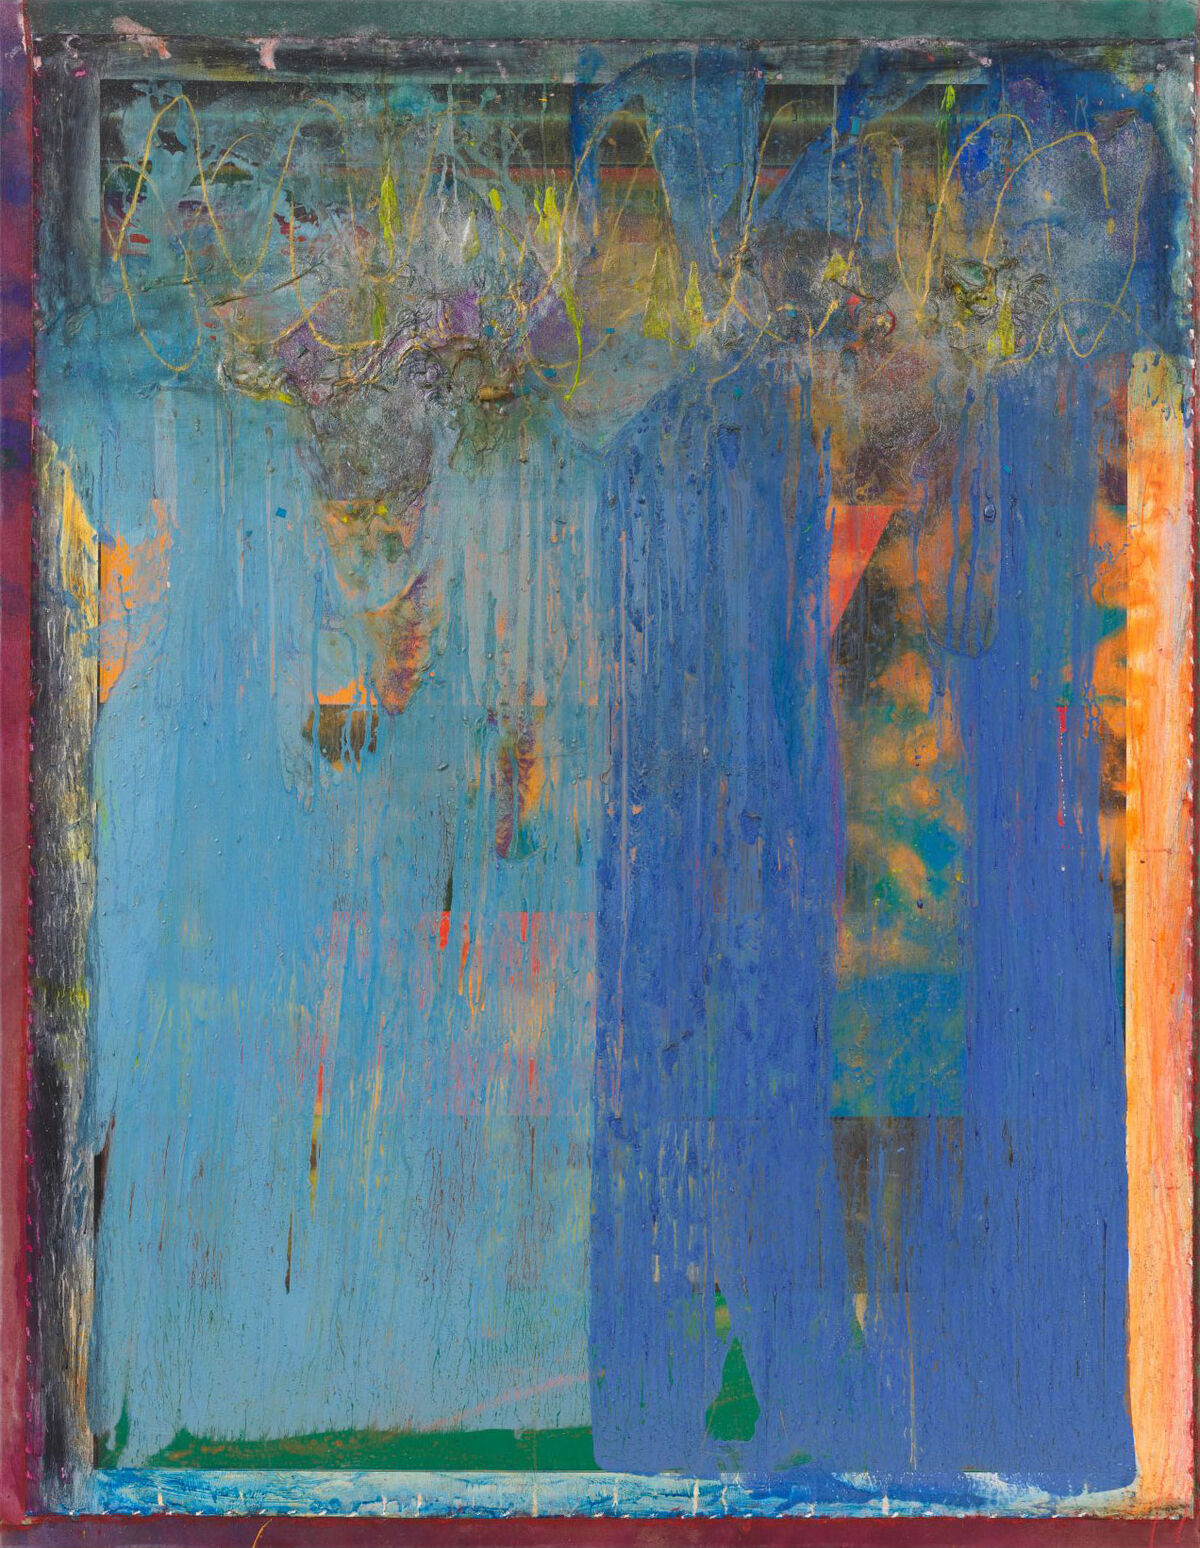 Frank Bowling, Two Blues, 2018. © Frank Bowling/Artists Rights Society (ARS), New York; DACS, London. Courtesy of Alexander Gray Associates, New York; Hales Gallery, London; and Marc Selwyn Fine Art, Los Angeles.